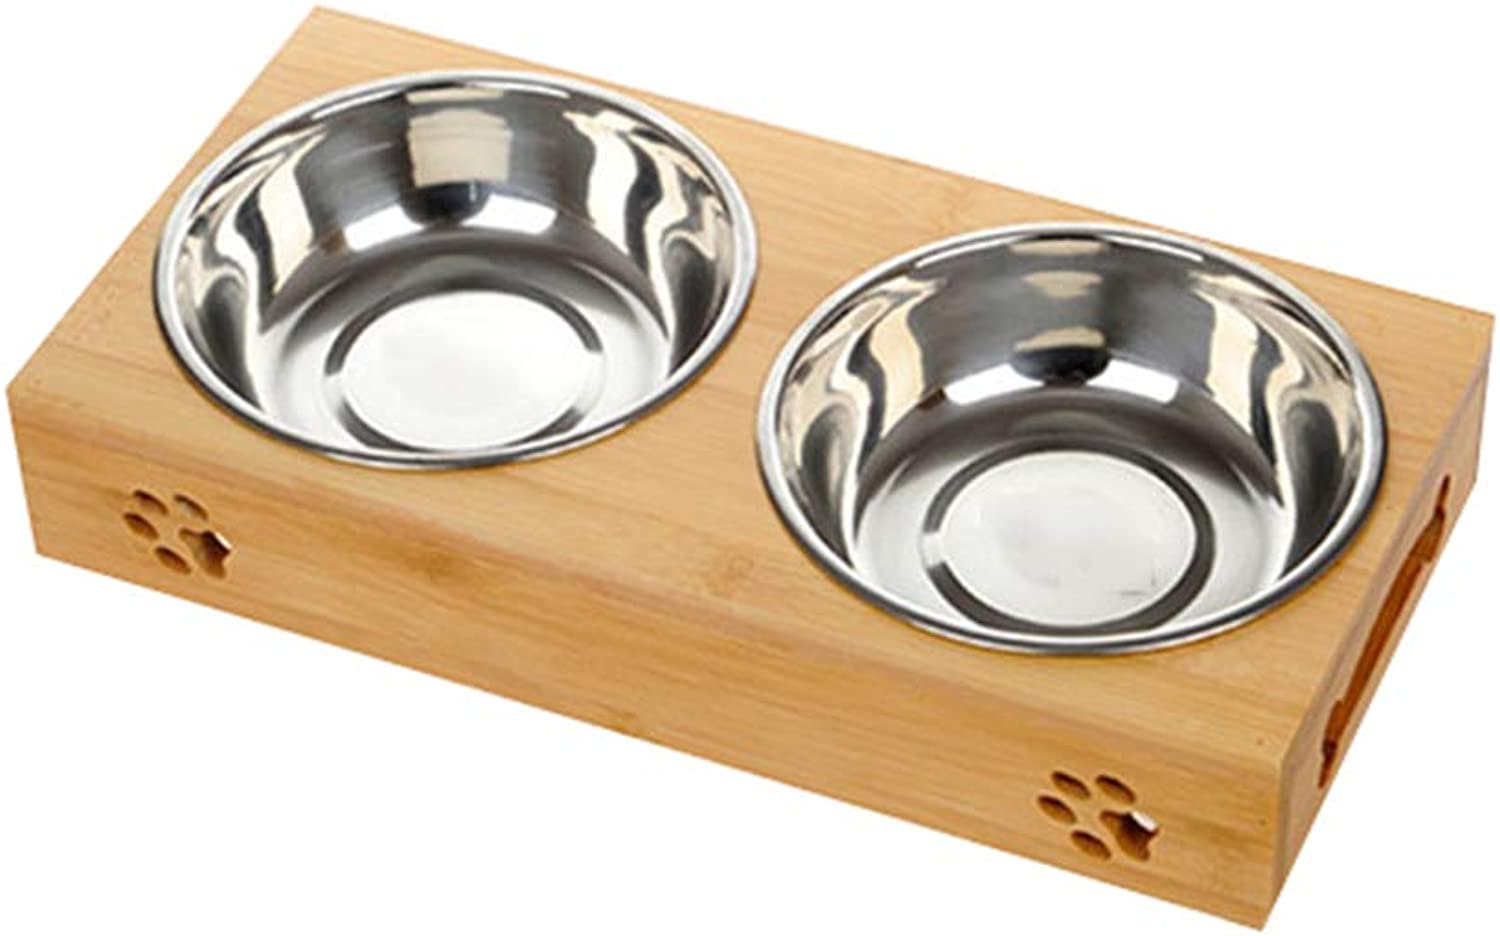 Gatto Doppio Bowl Rice Bowl Gatto Pot Cat Food Bowl Water Bowl Dog Dining Table, Silver, Doubles